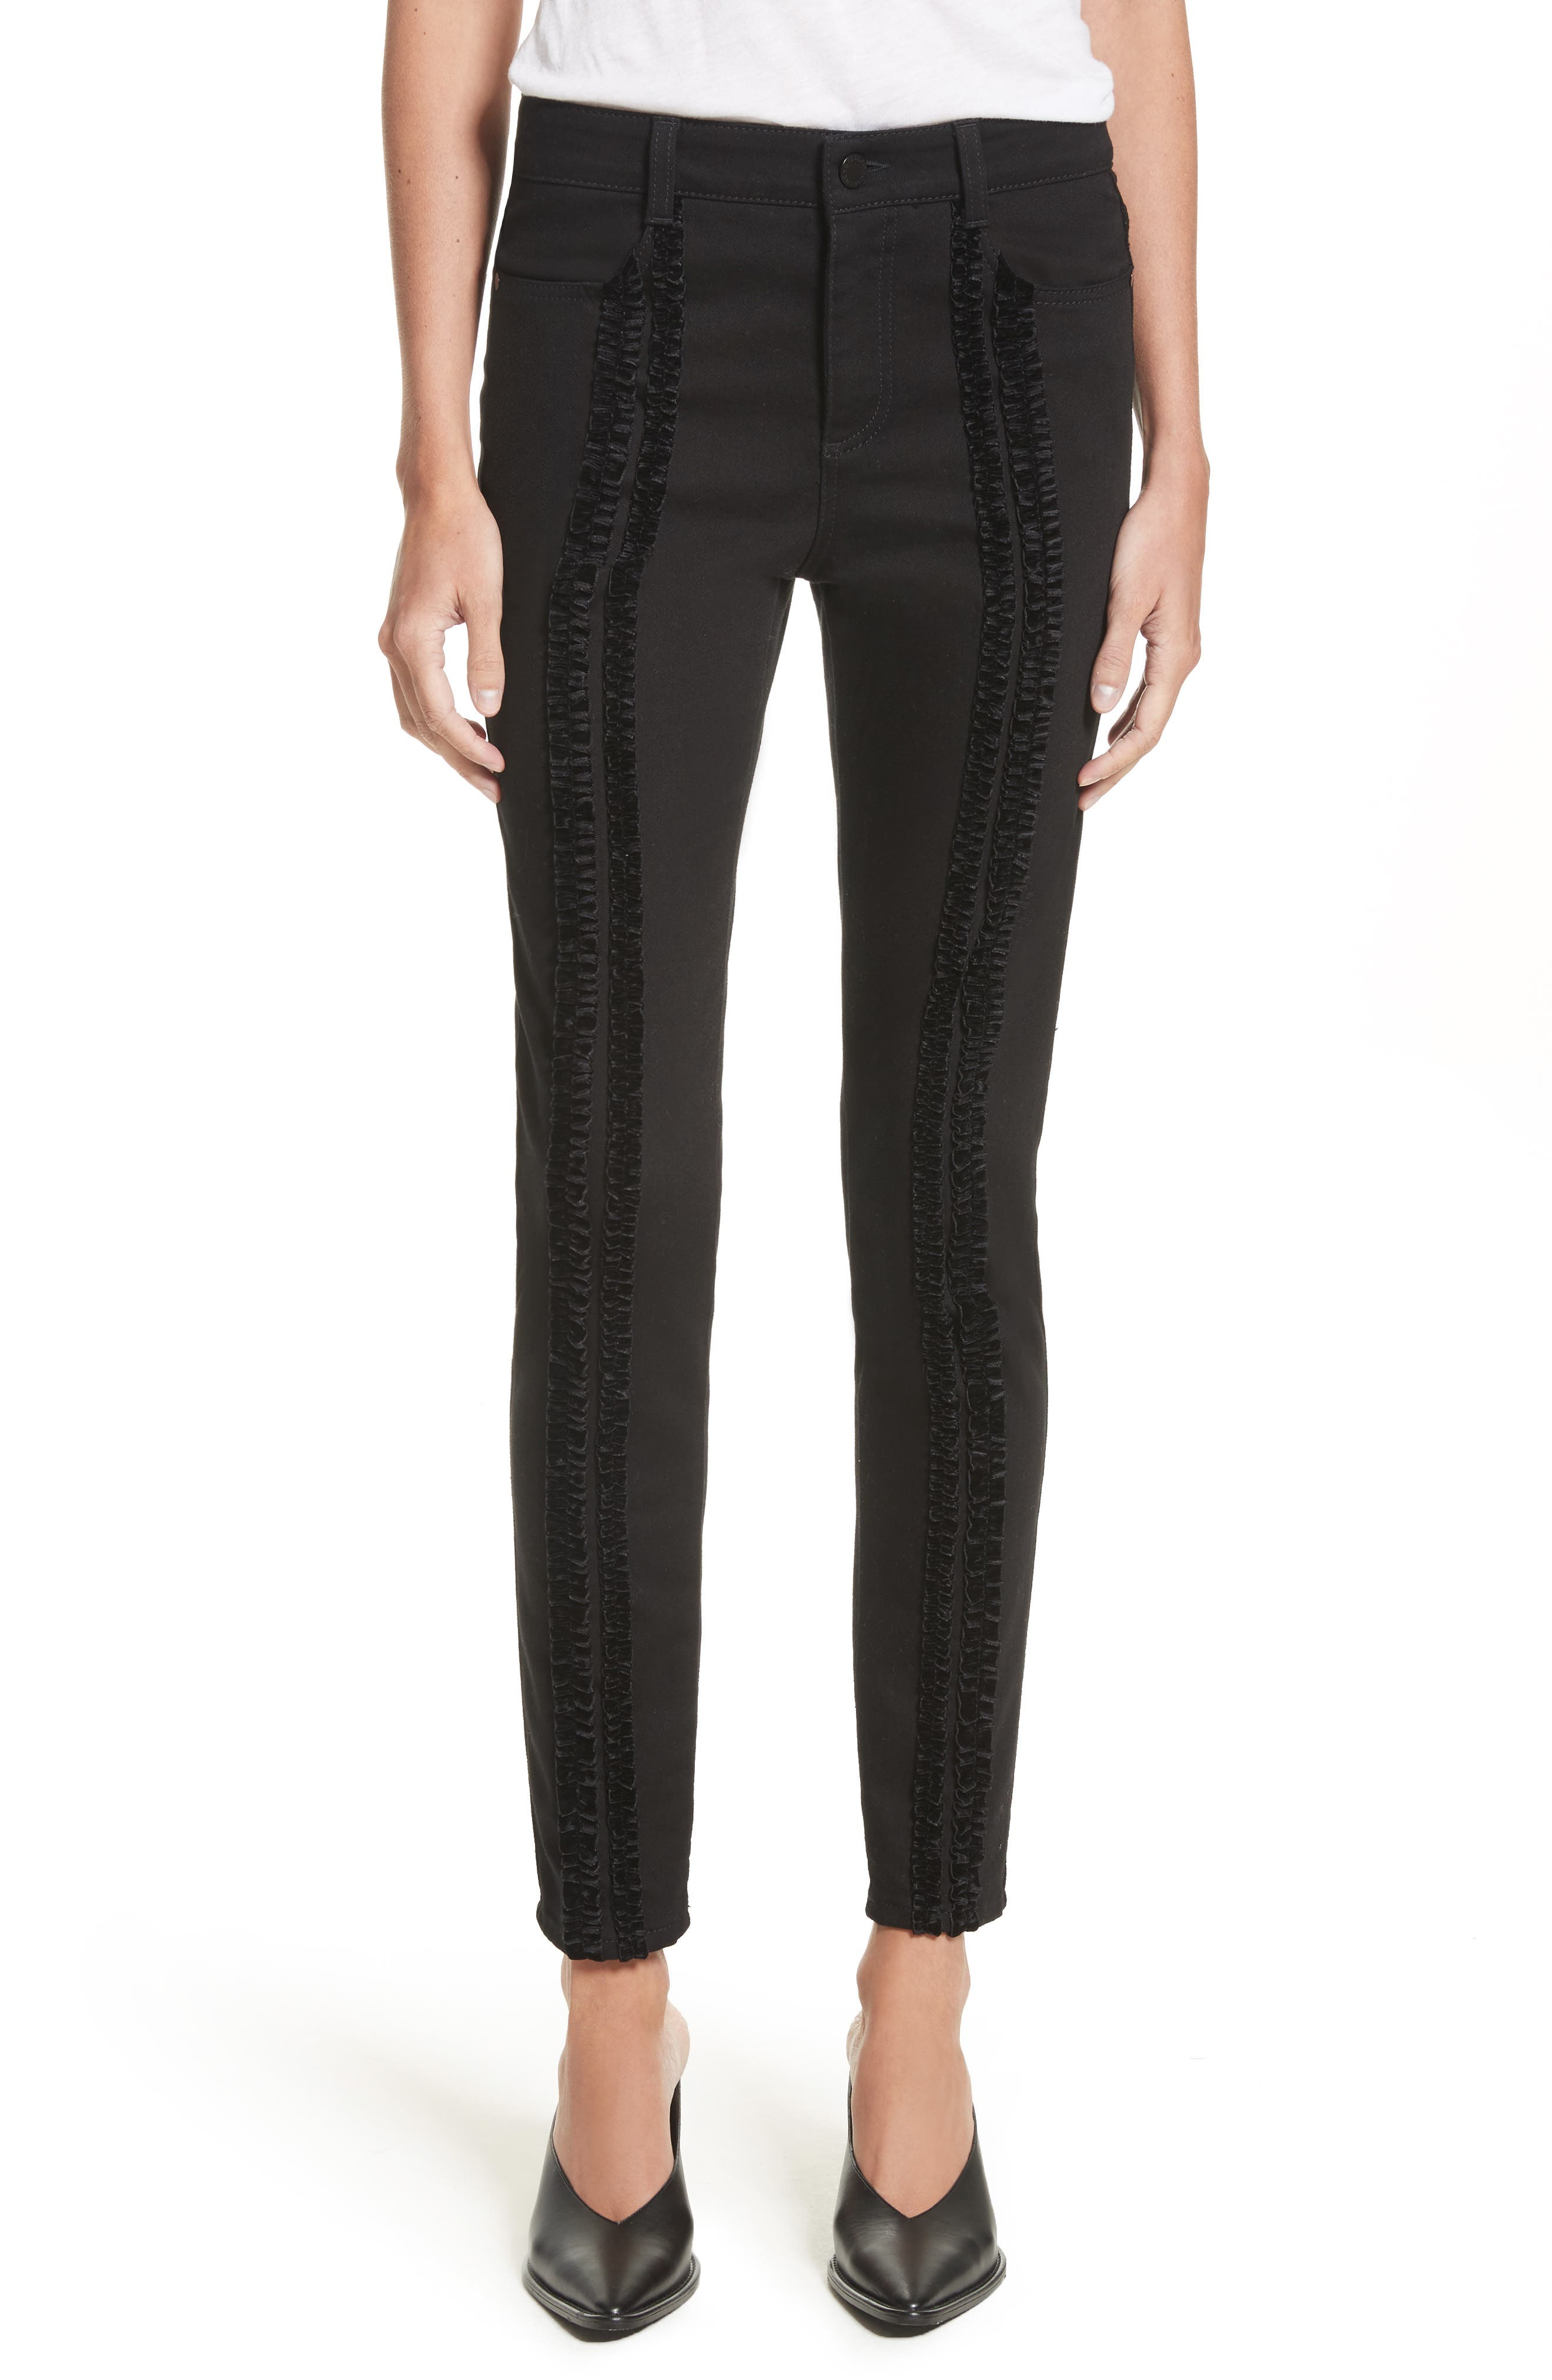 Stella McCartney Velvet Trim High Waist Skinny Jeans